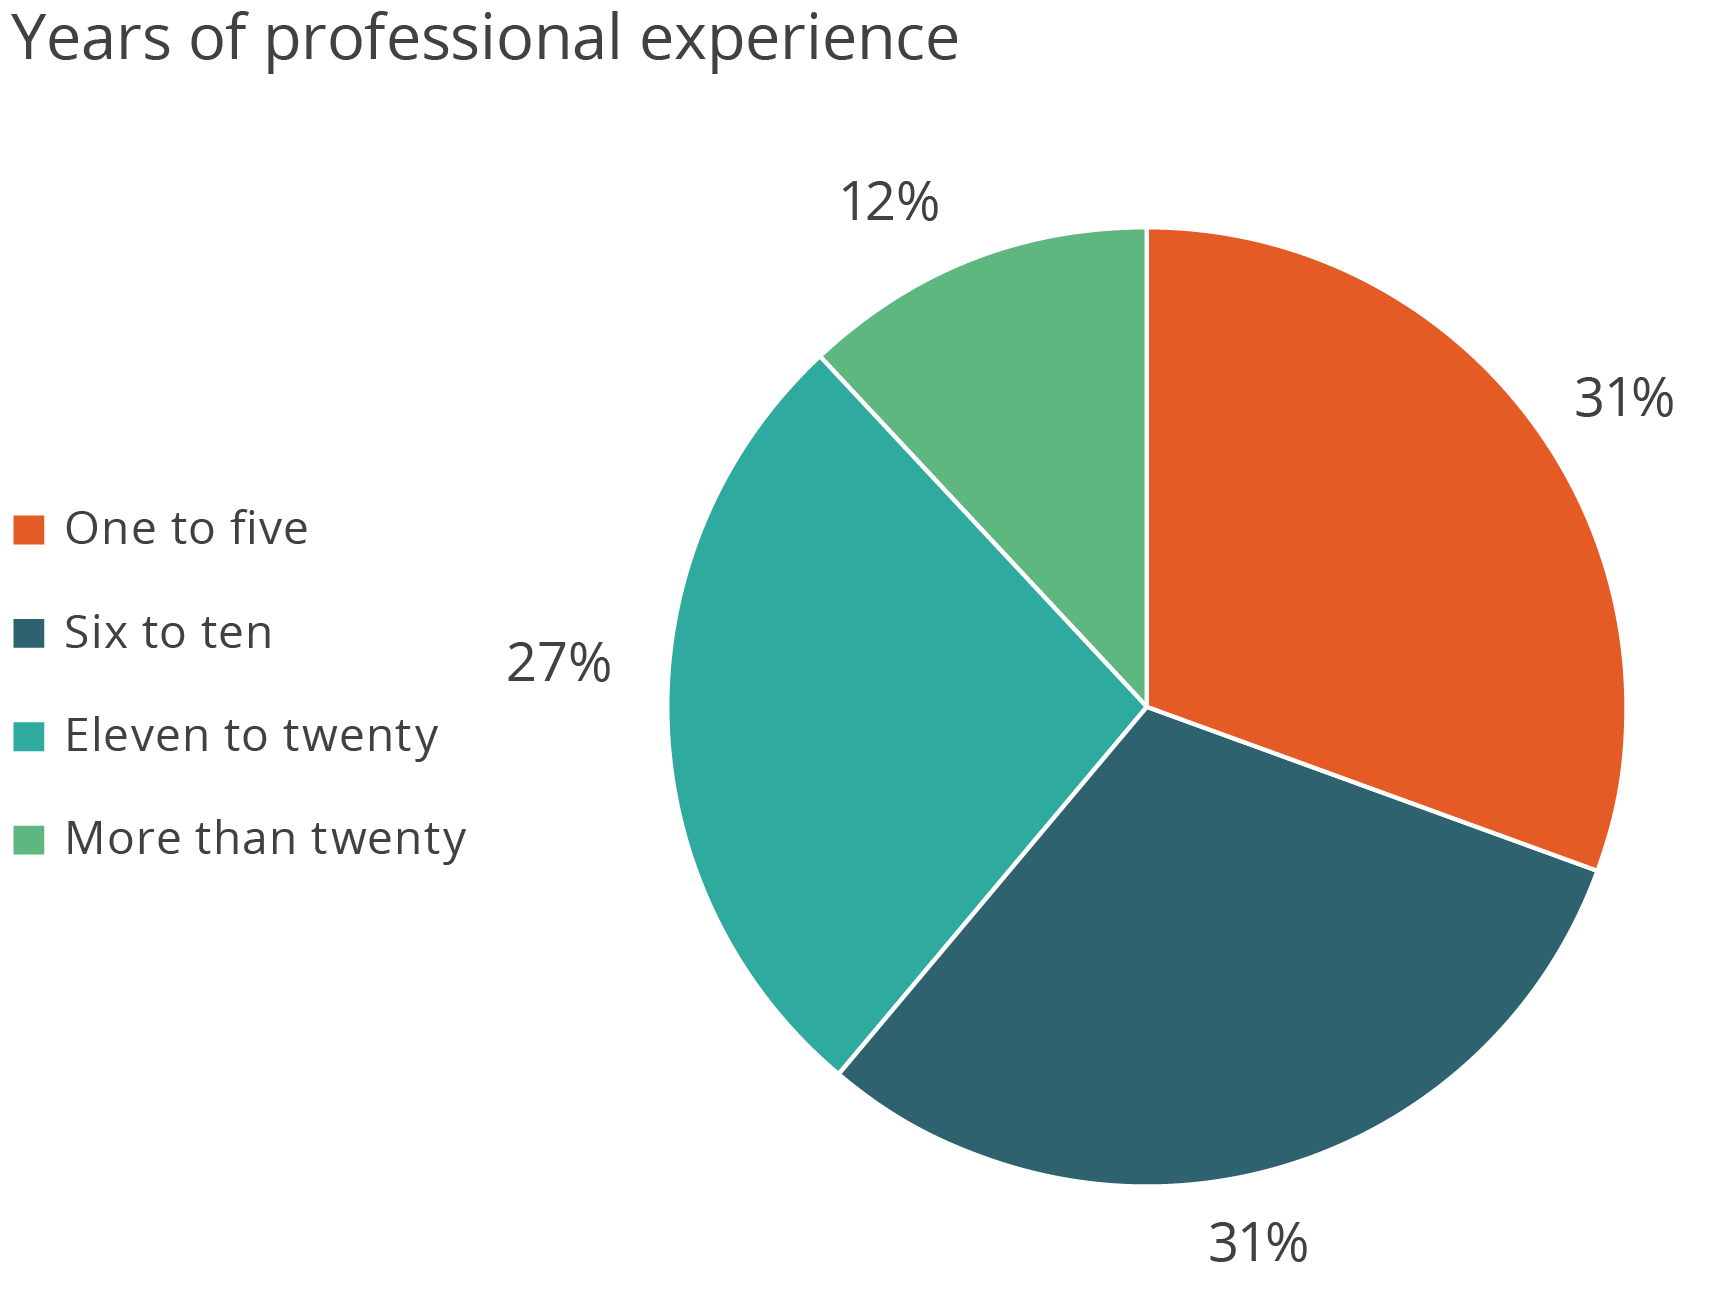 Years of professional experience: One to five: 31%, Six to ten: 31%, Eleven to twenty: 27%, More than twenty: 12%